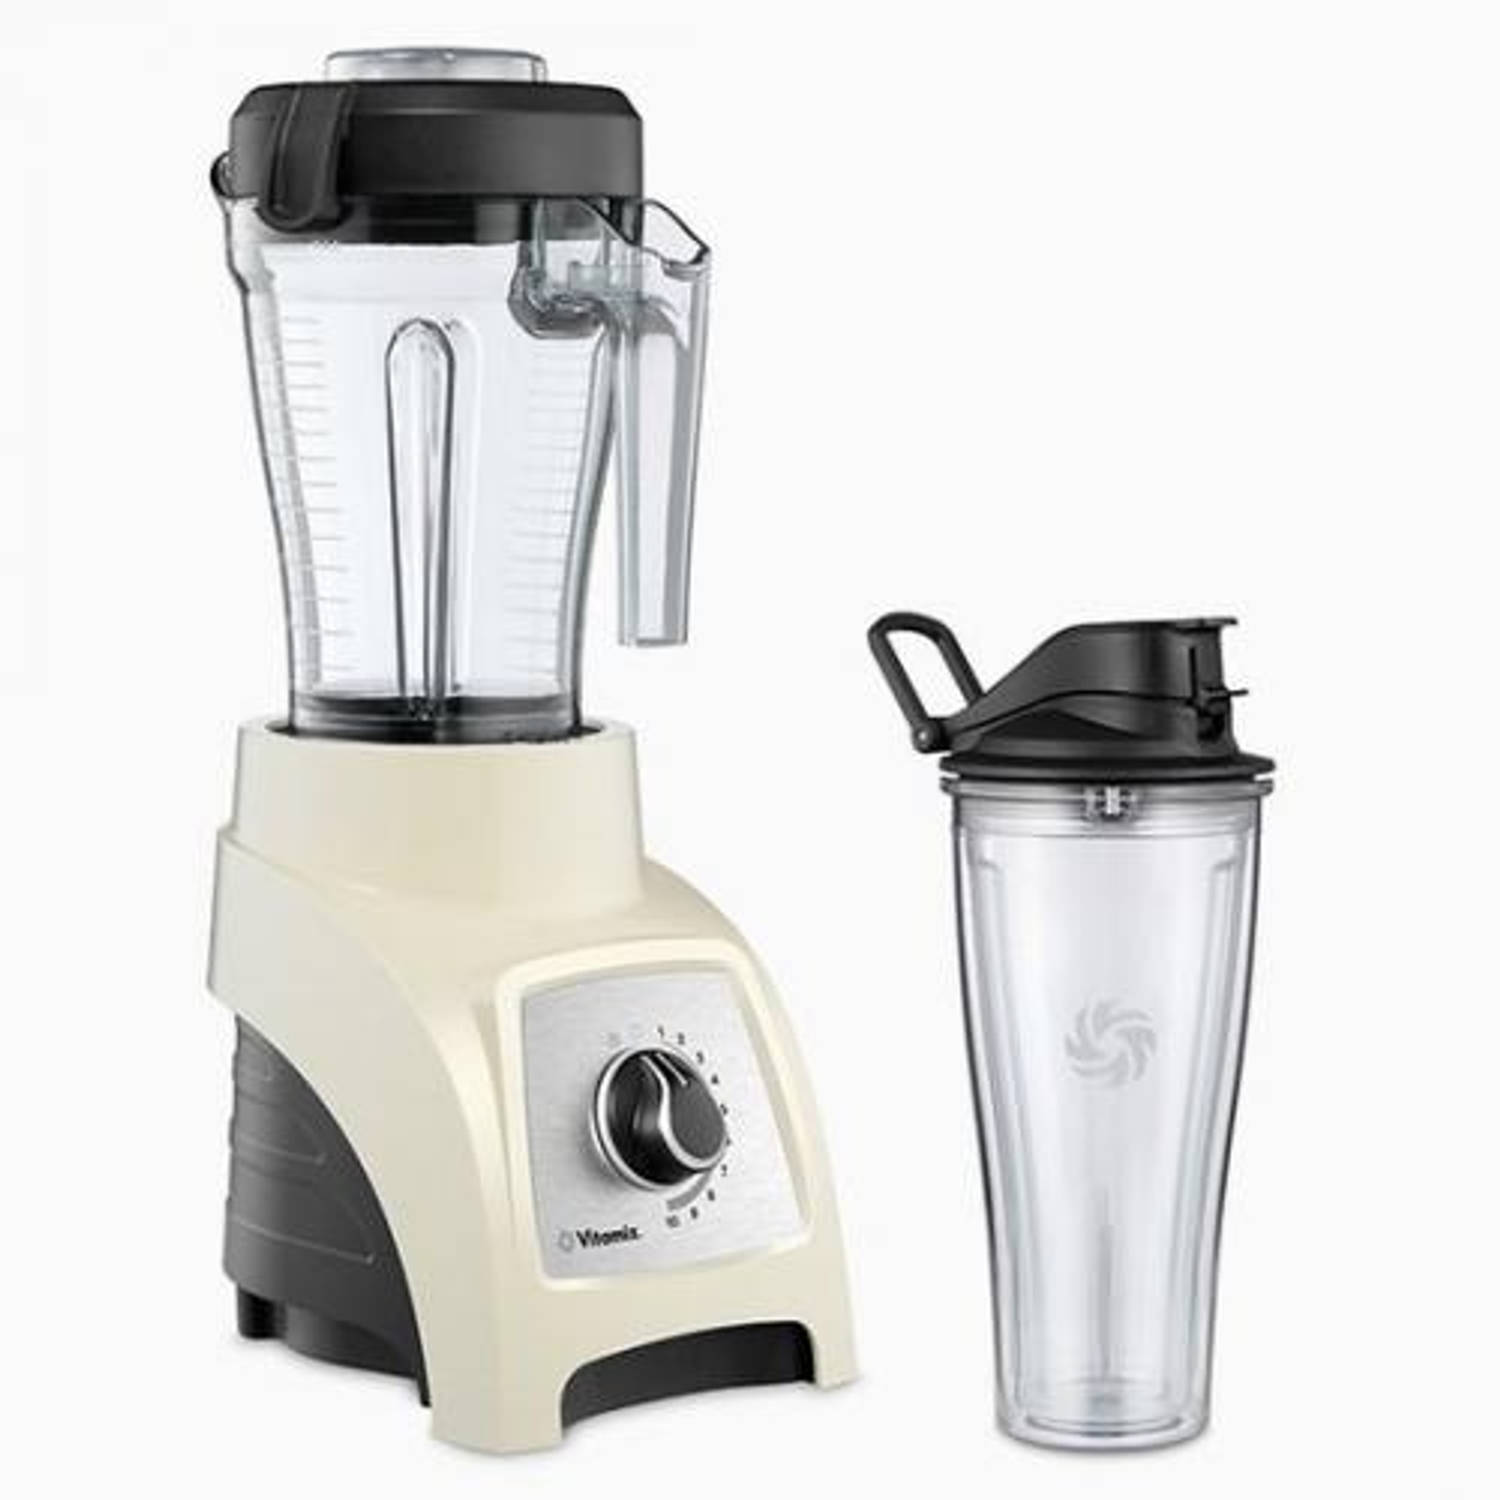 Power blender s30 cream - vitamix